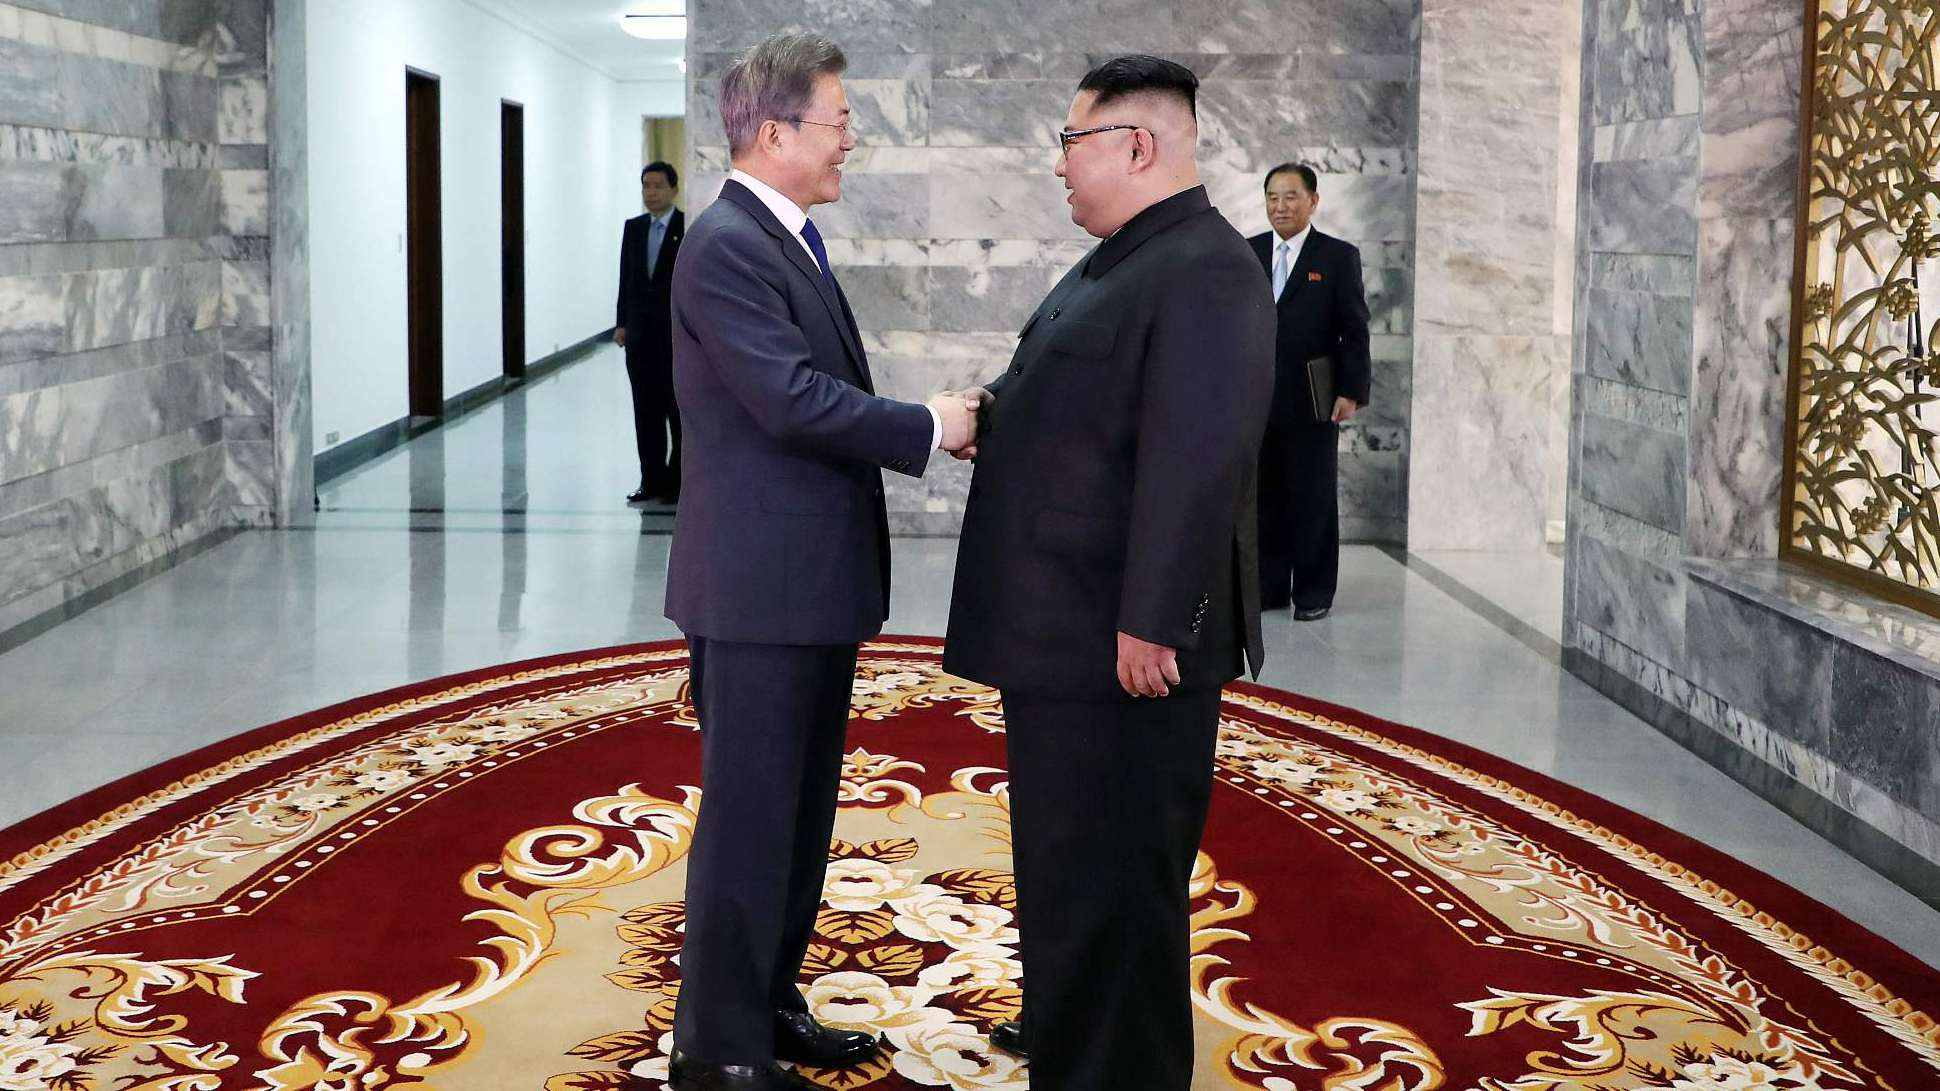 Opinion: The long and arduous road towards denuclearization in DPRK